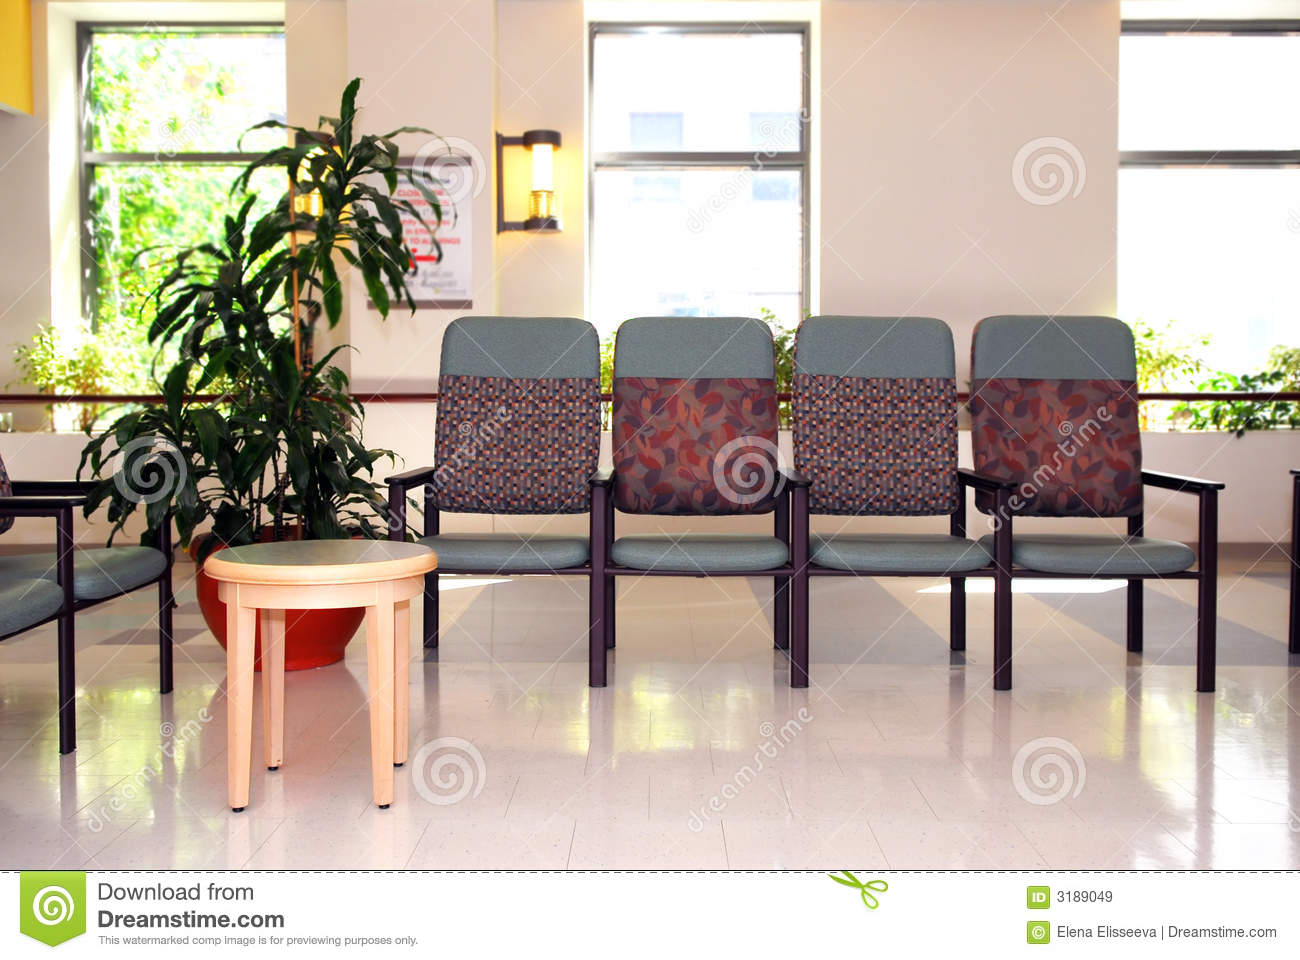 Hospital waiting room royalty free stock images image 3189049